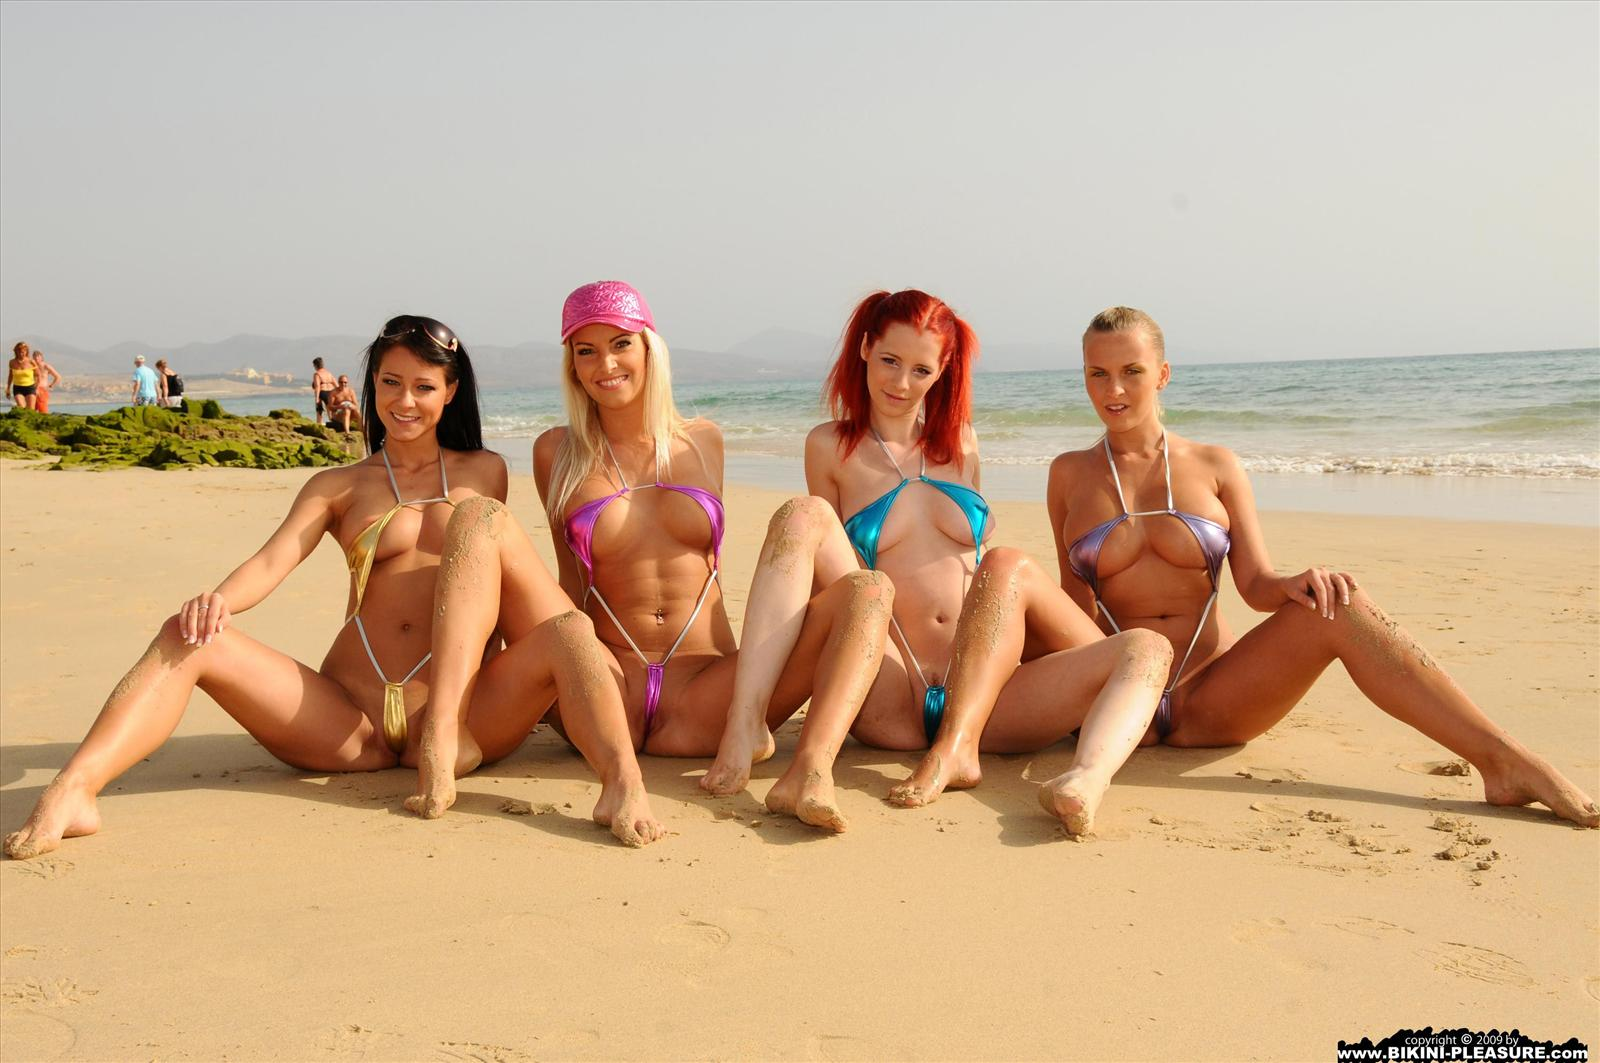 www.CelebTiger.com+Super+Mini+Bikini+Girls+At+Beach+44 Sexy Chicks Wearing Super Micro Bikini At Public Beach And Gets Nude HQ Photo Gallery